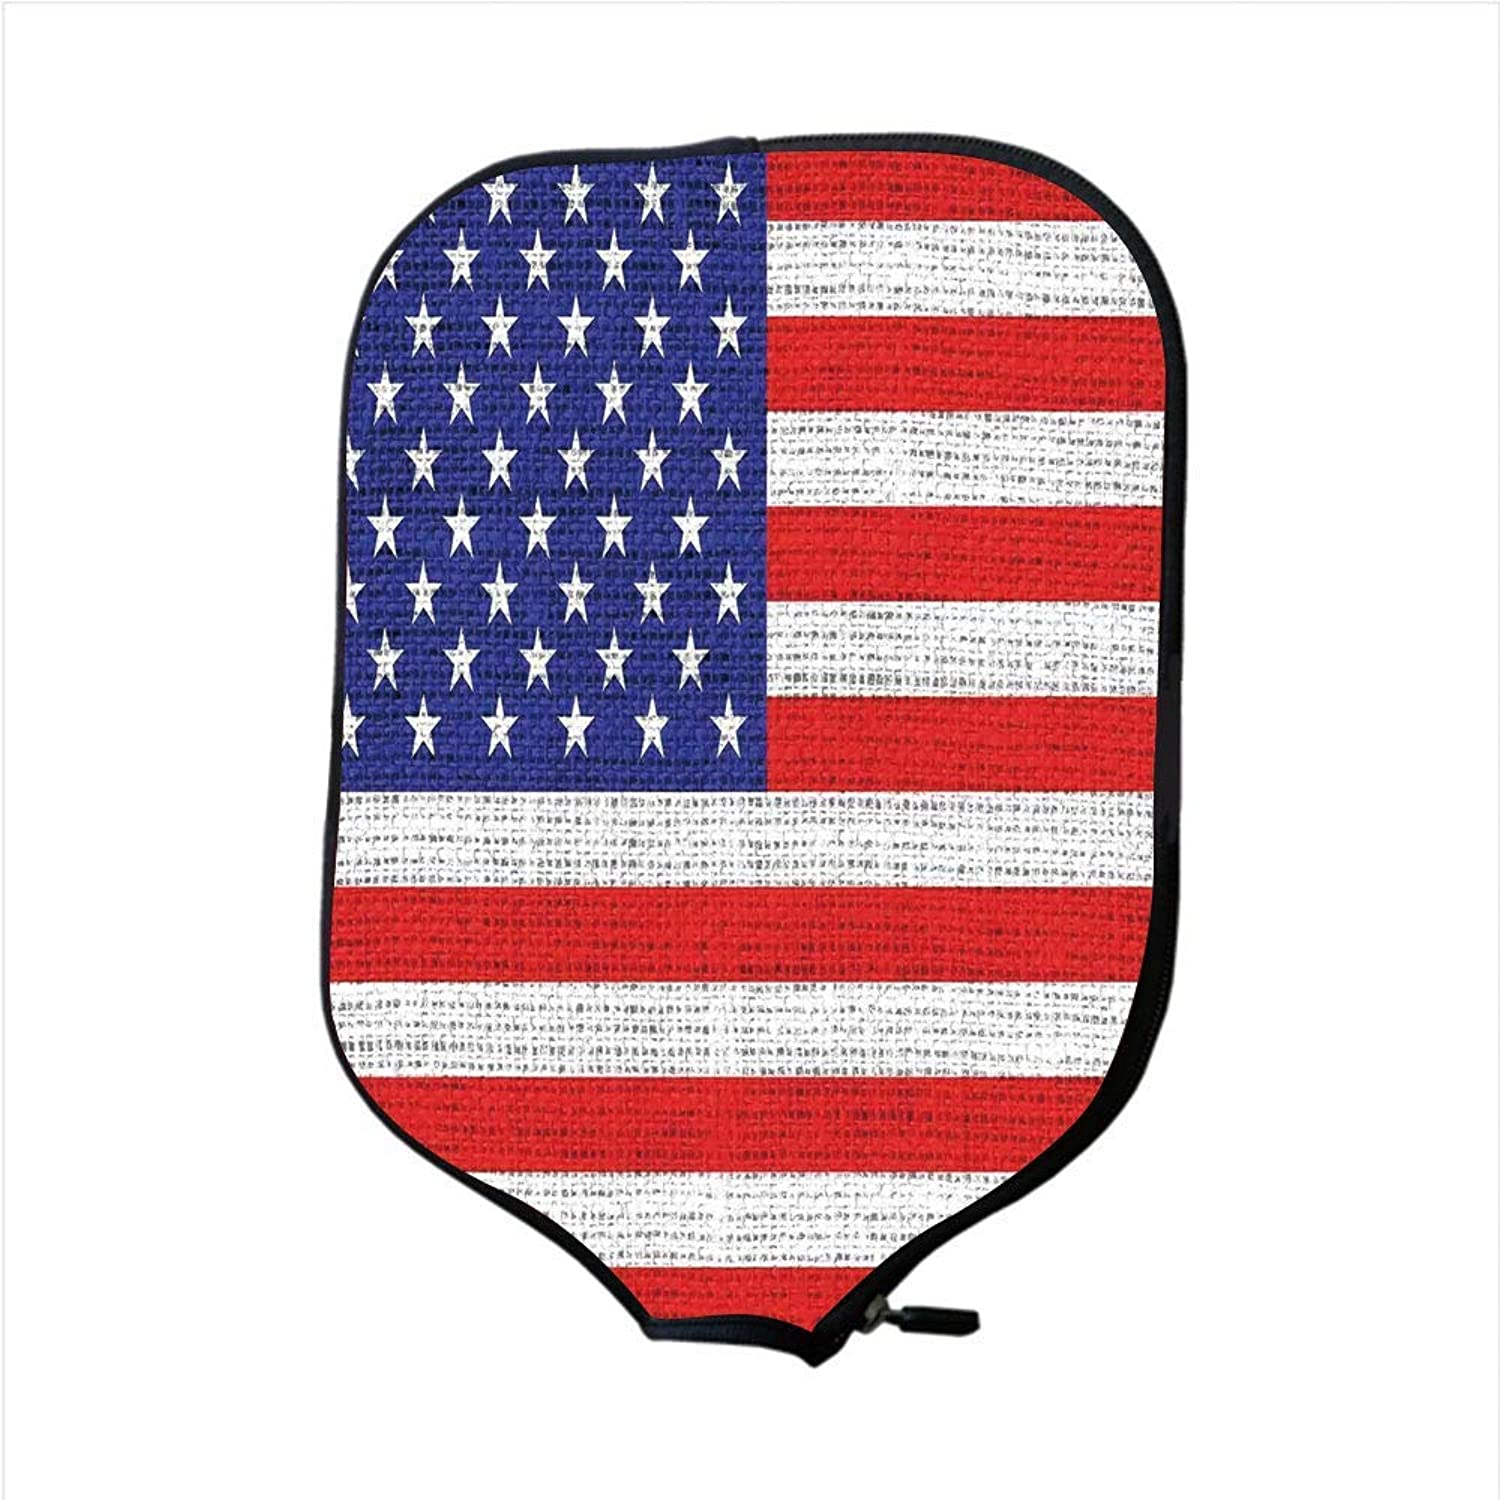 Fine Neoprene Pickleball Paddle Racket Cover Case,Rustic American USA Flag,Fourth of July Independence Day Burlap Looking Retro Vintage Country Pastel color,Fit for Most Rackets